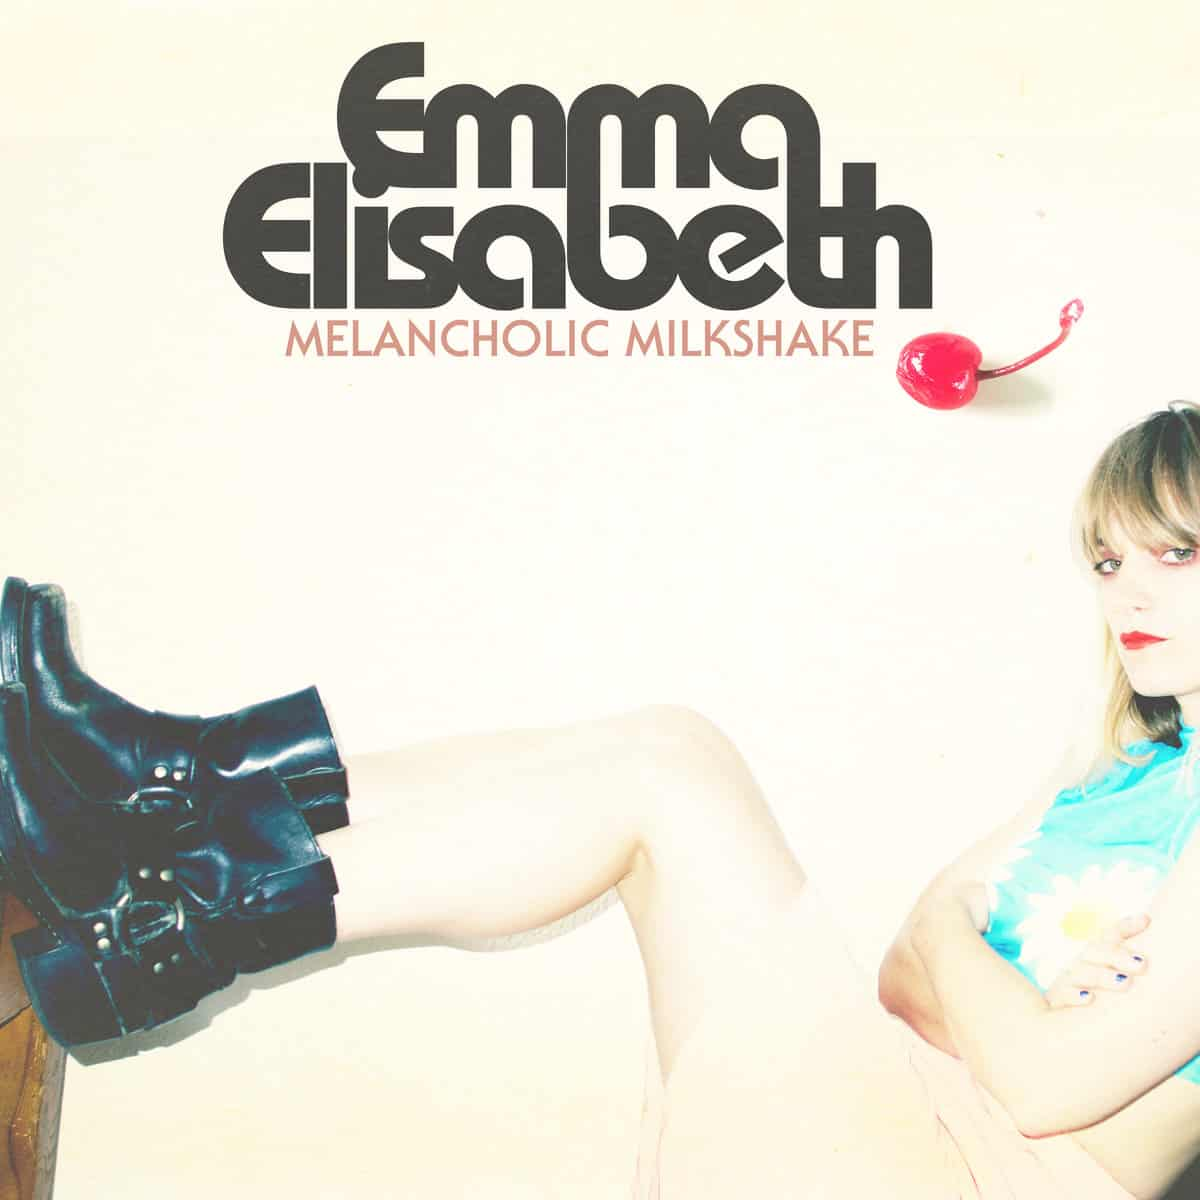 Happy Releaseday: Emma Elisabeth - Melancholic Milkshake • 4 Videos + full Album-Stream